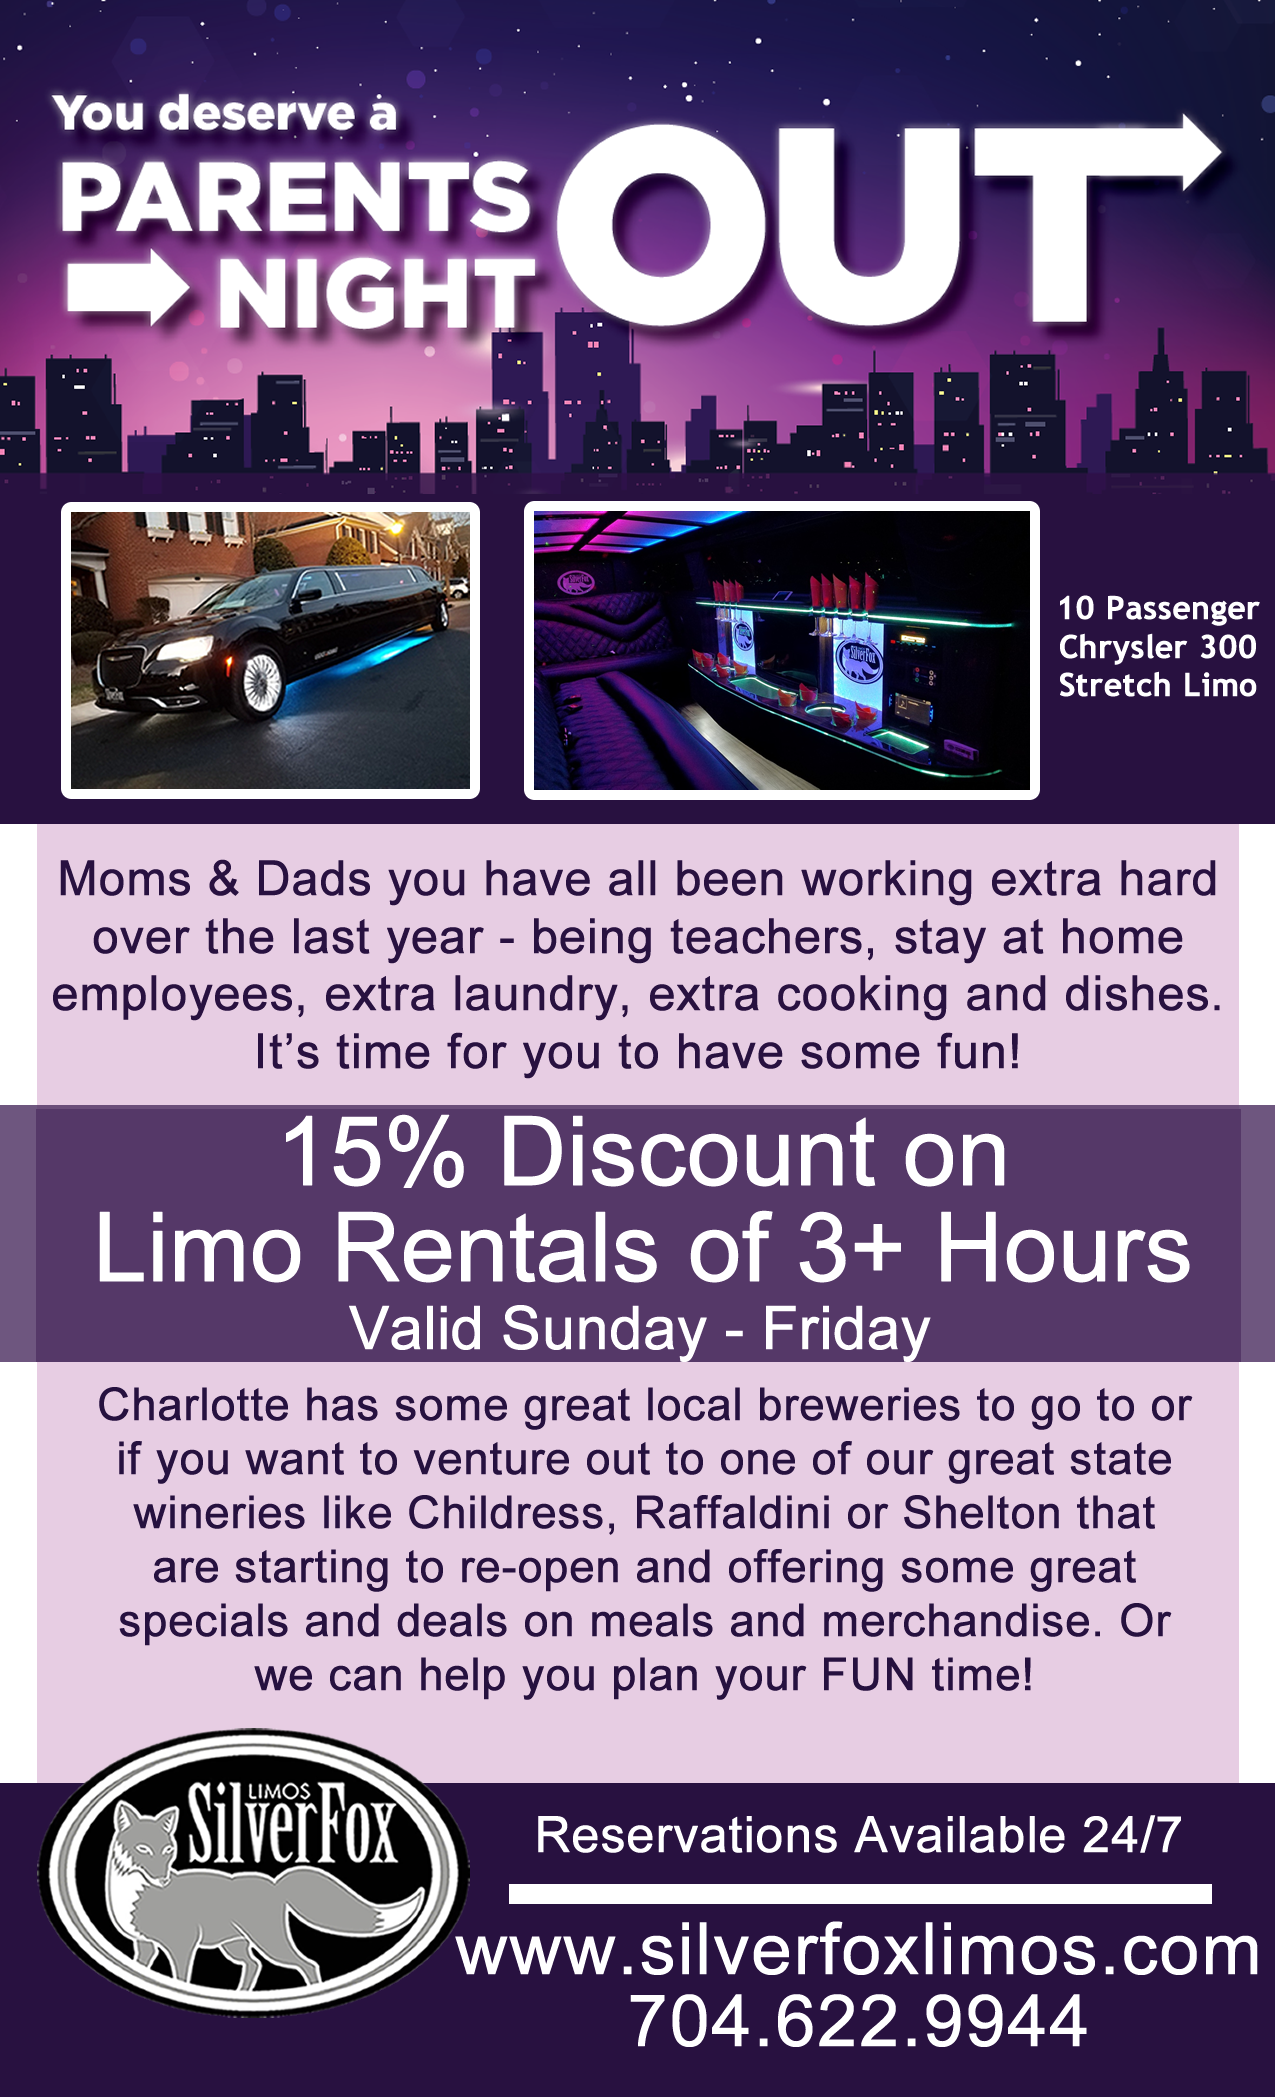 PArentsNightOut_FLYER_WEB